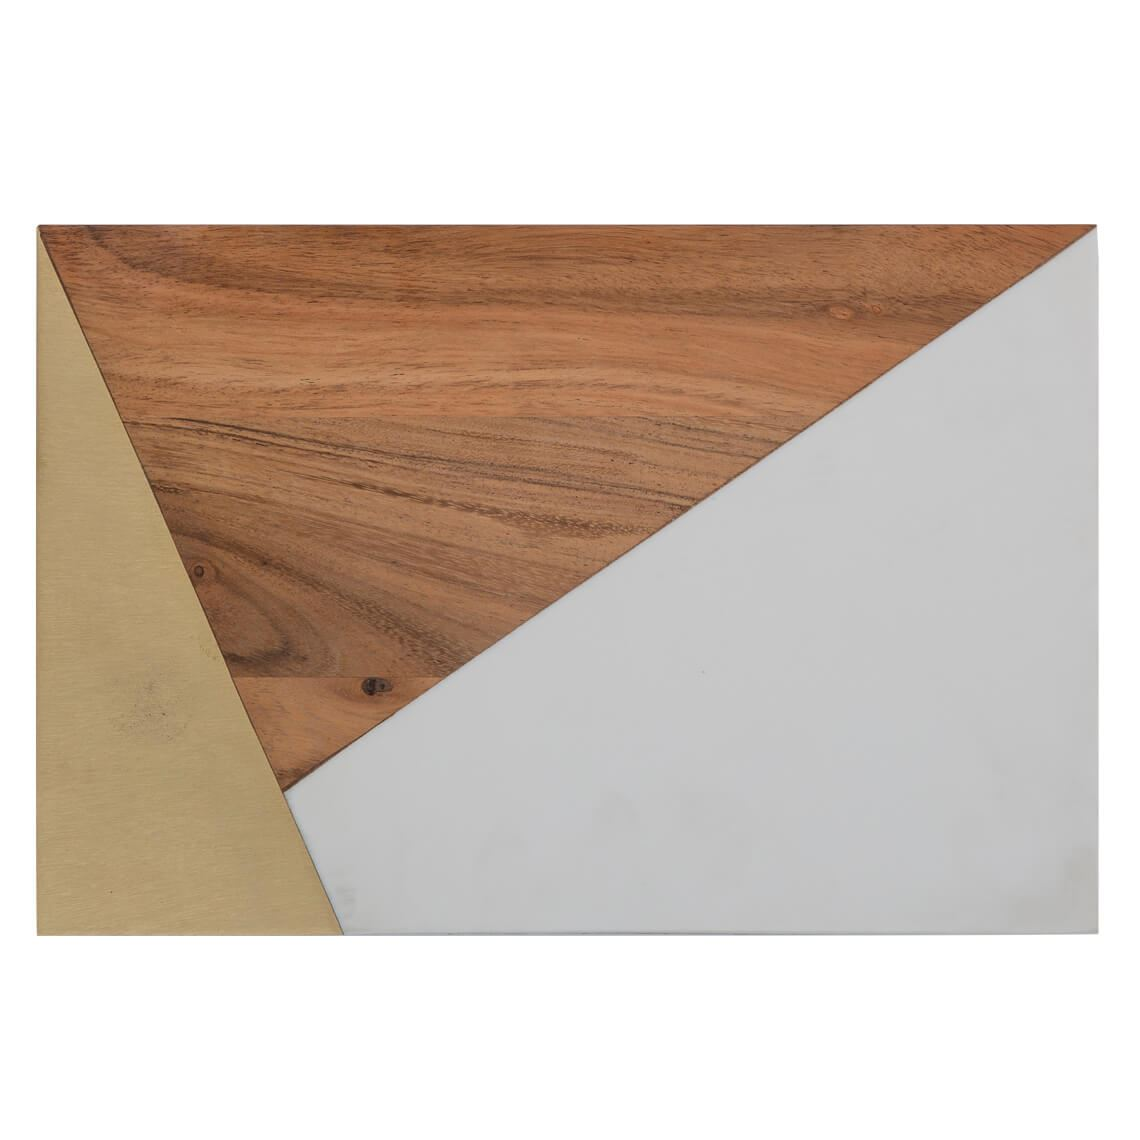 Triad Cheese Board Size W 20cm x D 31cm x H 2cm in White/Timber Freedom